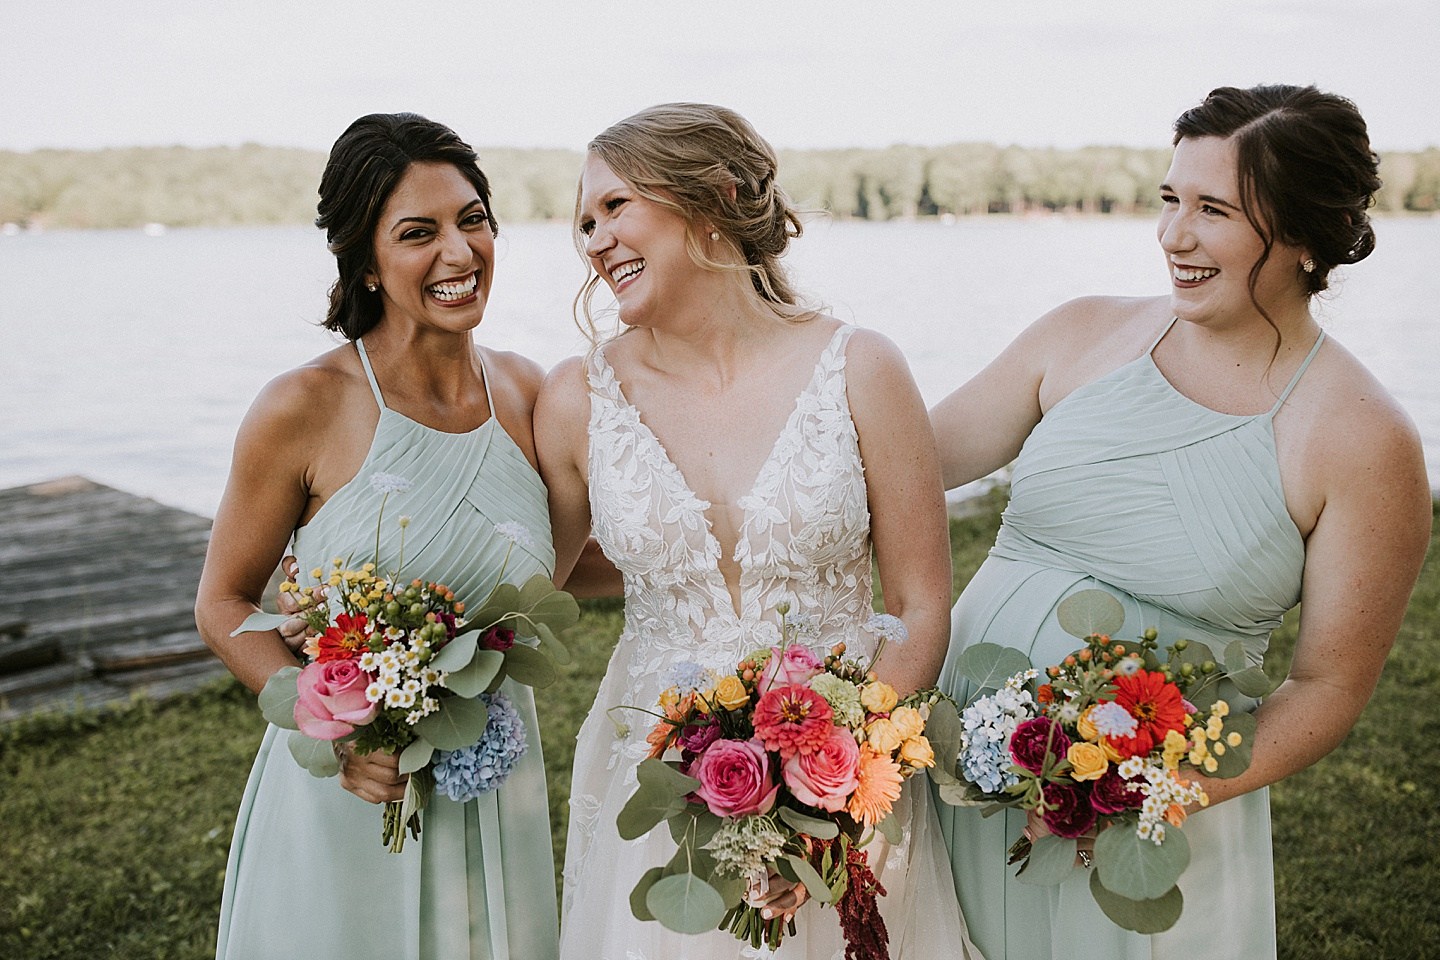 Pictures of bride and her bridesmaids